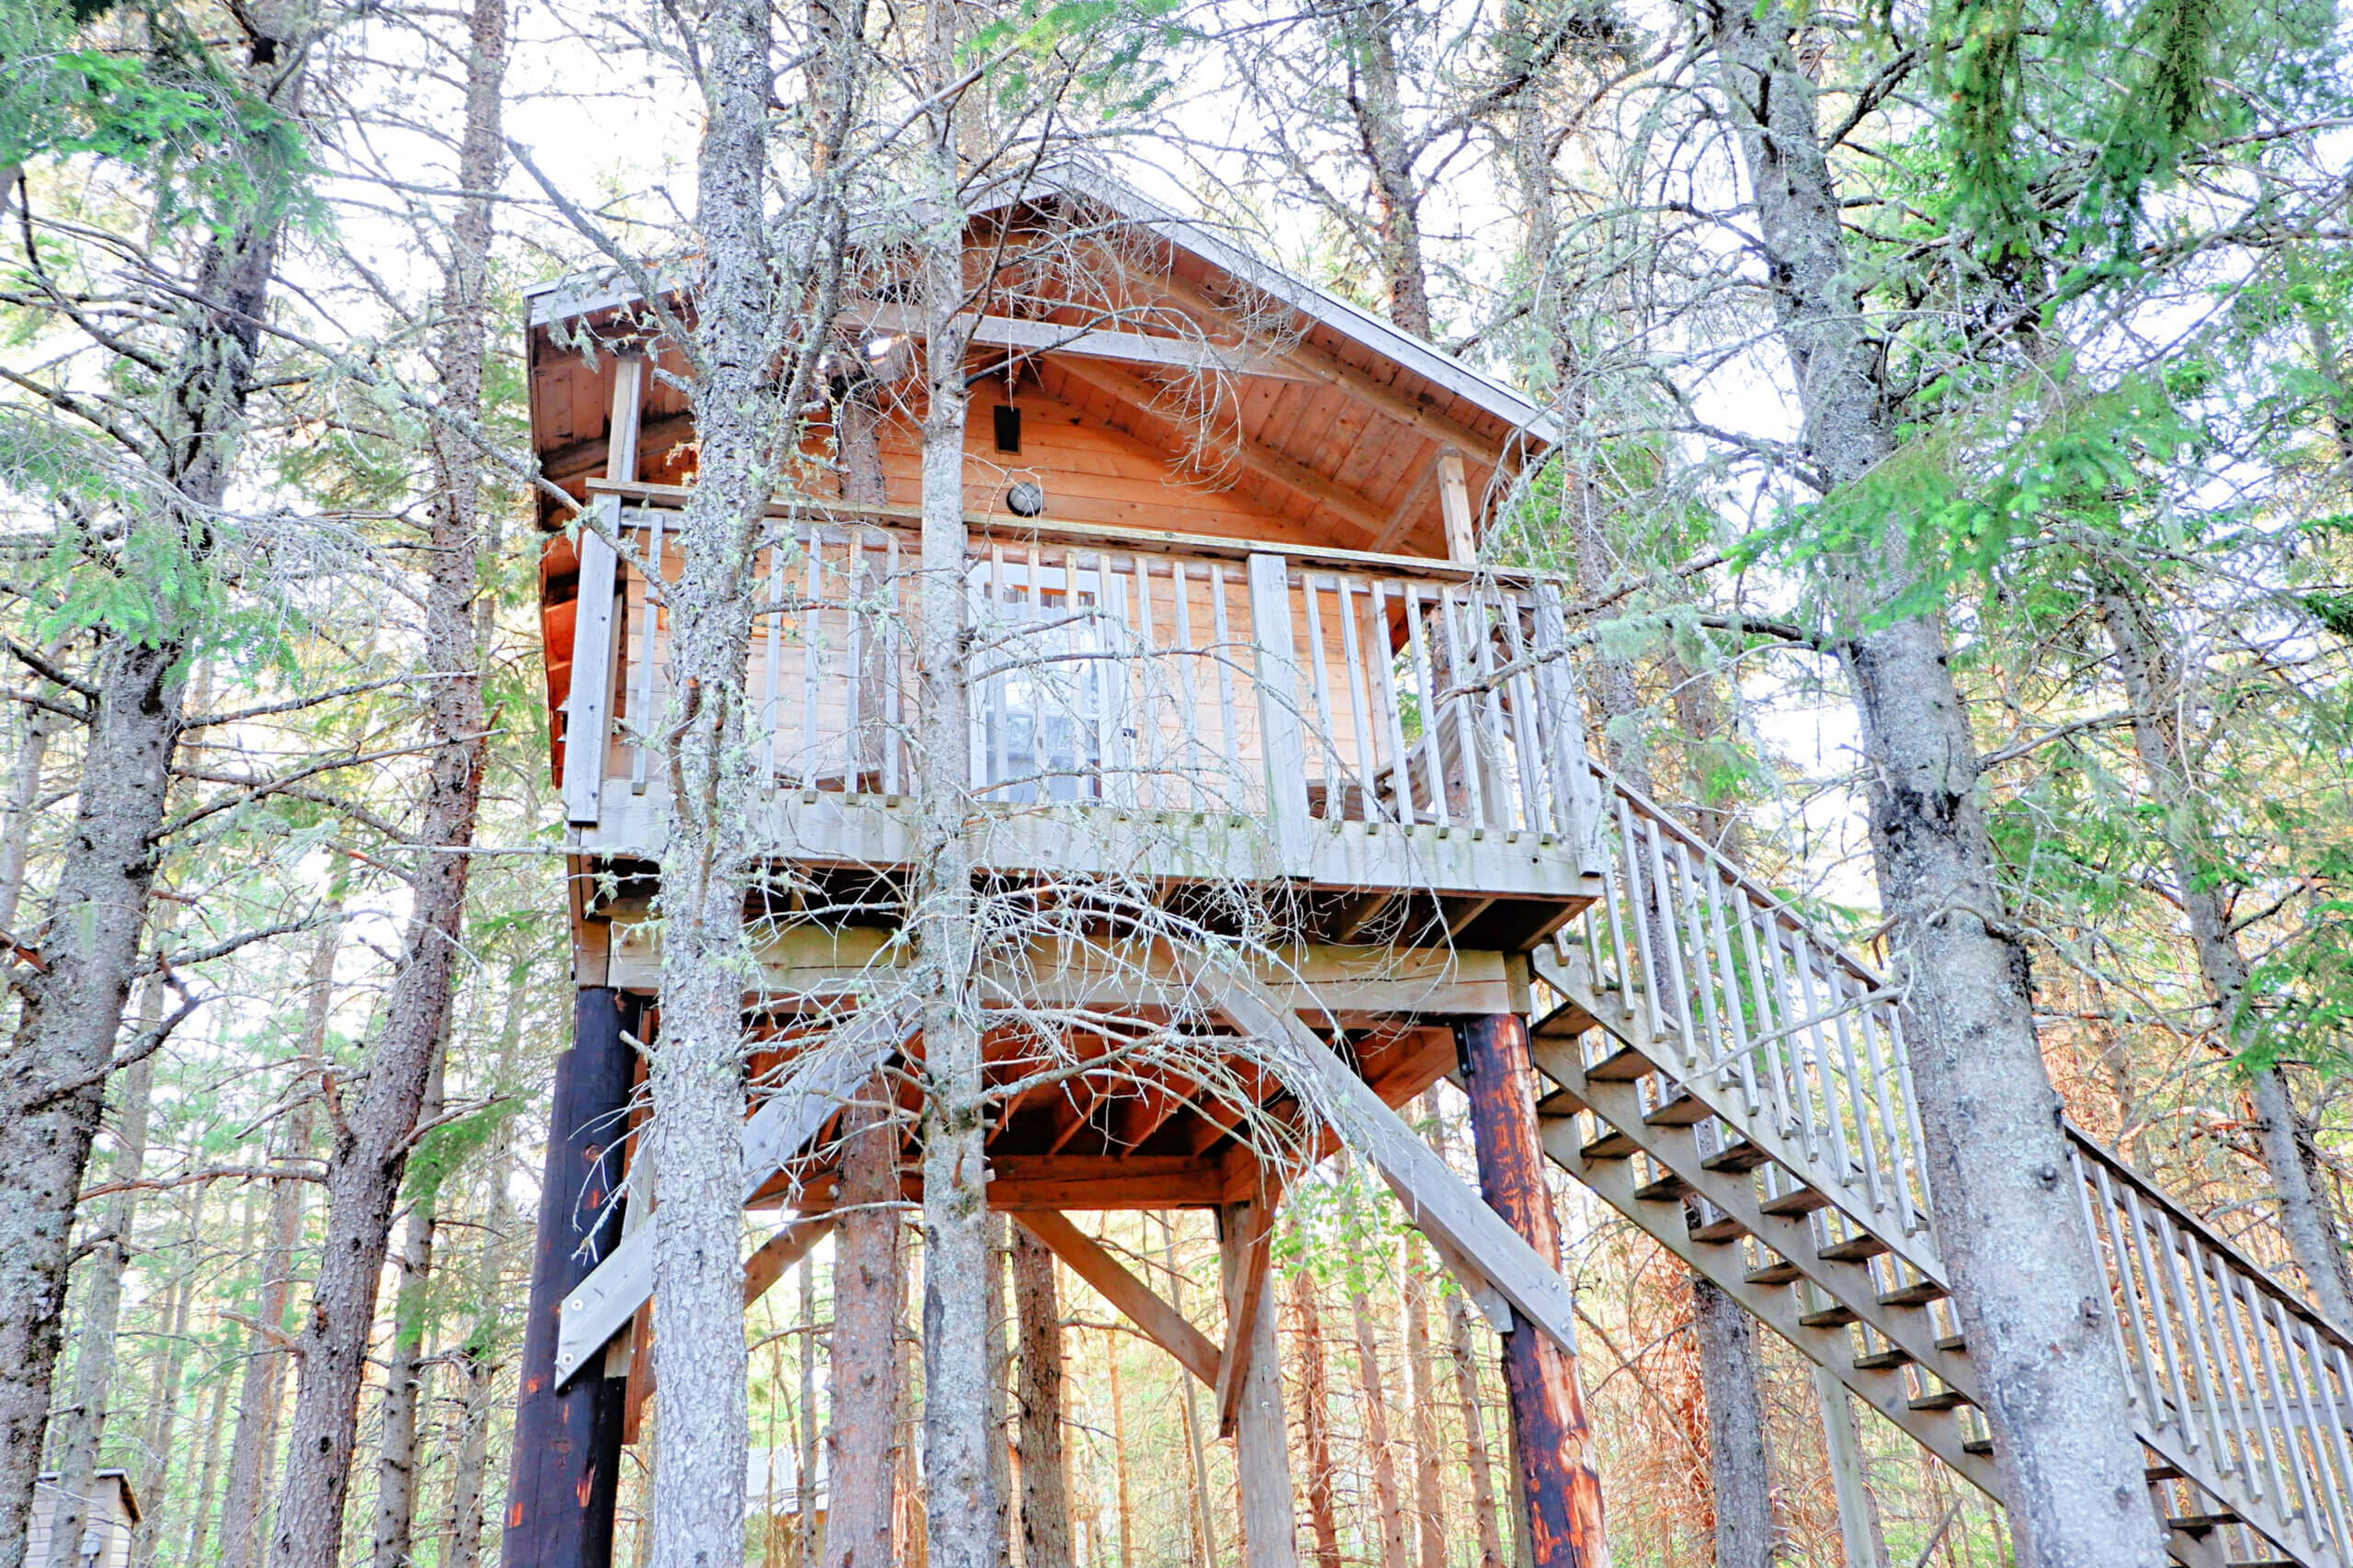 treehouse camping miramichi with kids things to do in new brunswick summer staycation ideas